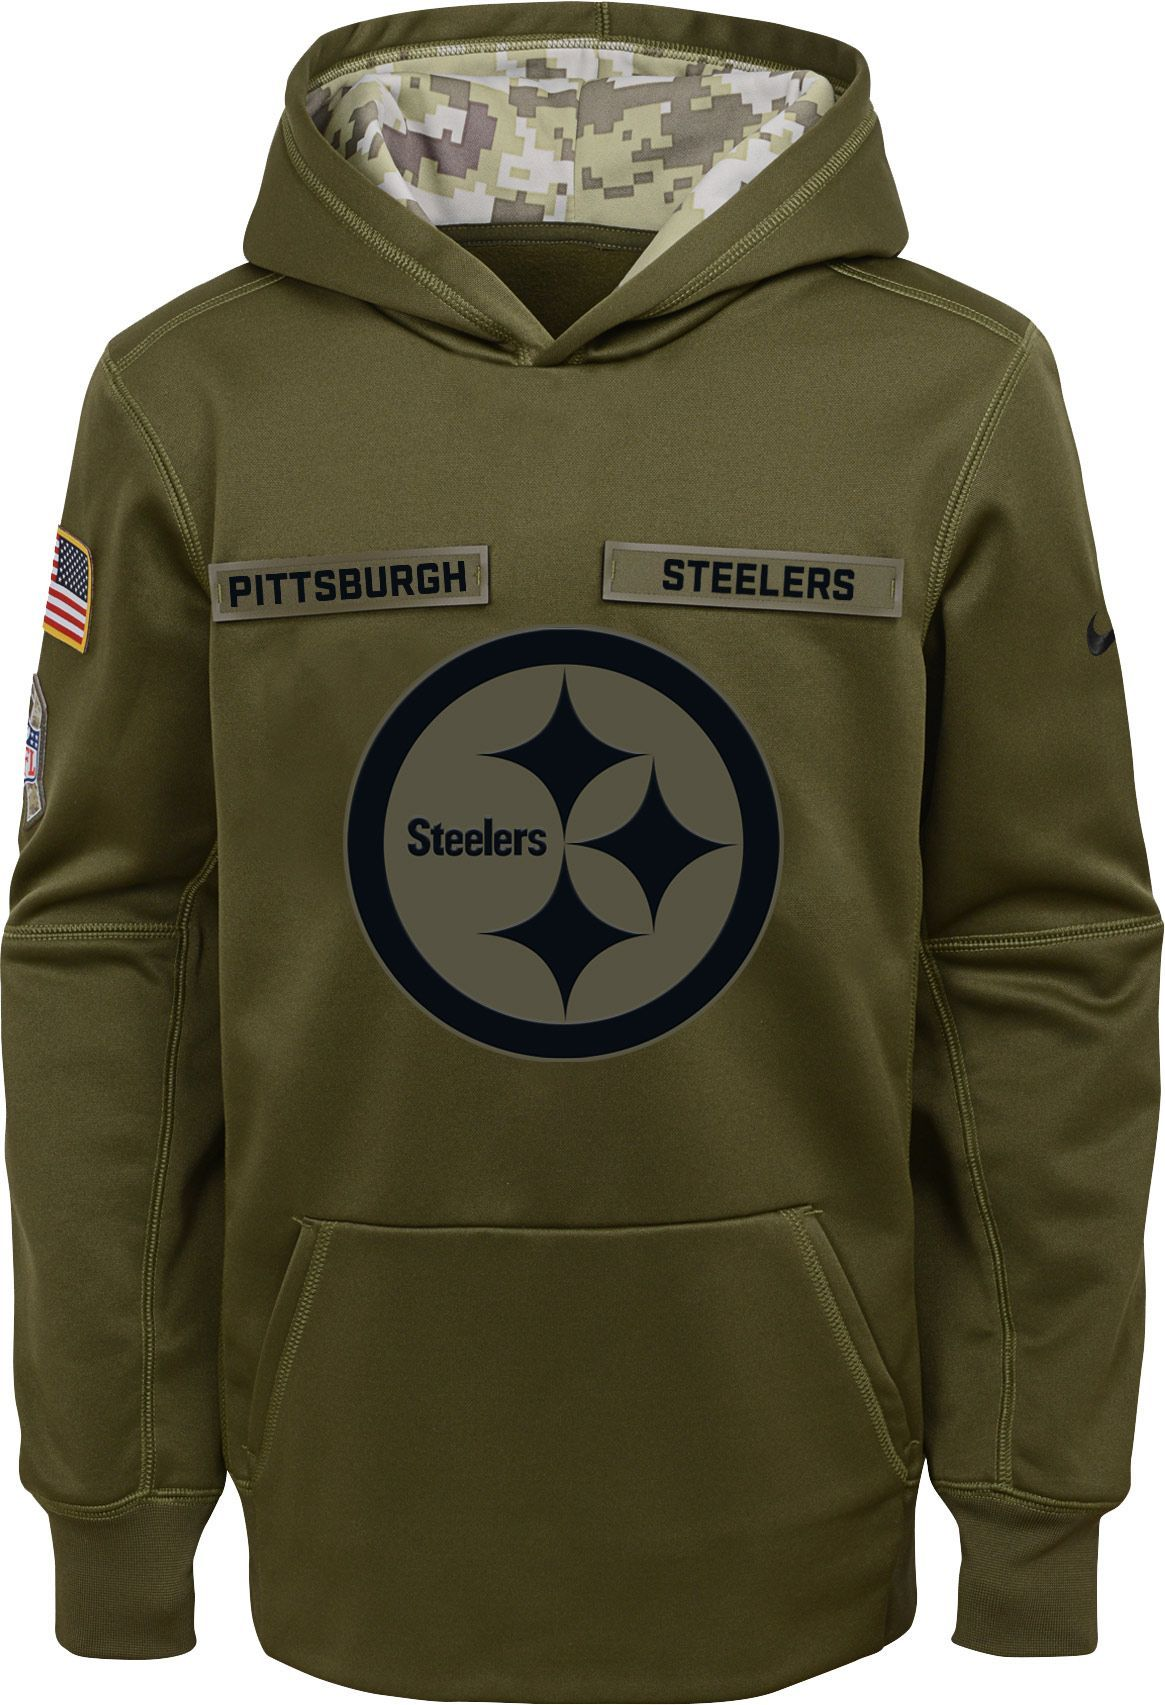 online retailer 576a0 b3643 Nike Youth Salute to Service Pittsburgh Steelers Therma-FIT ...